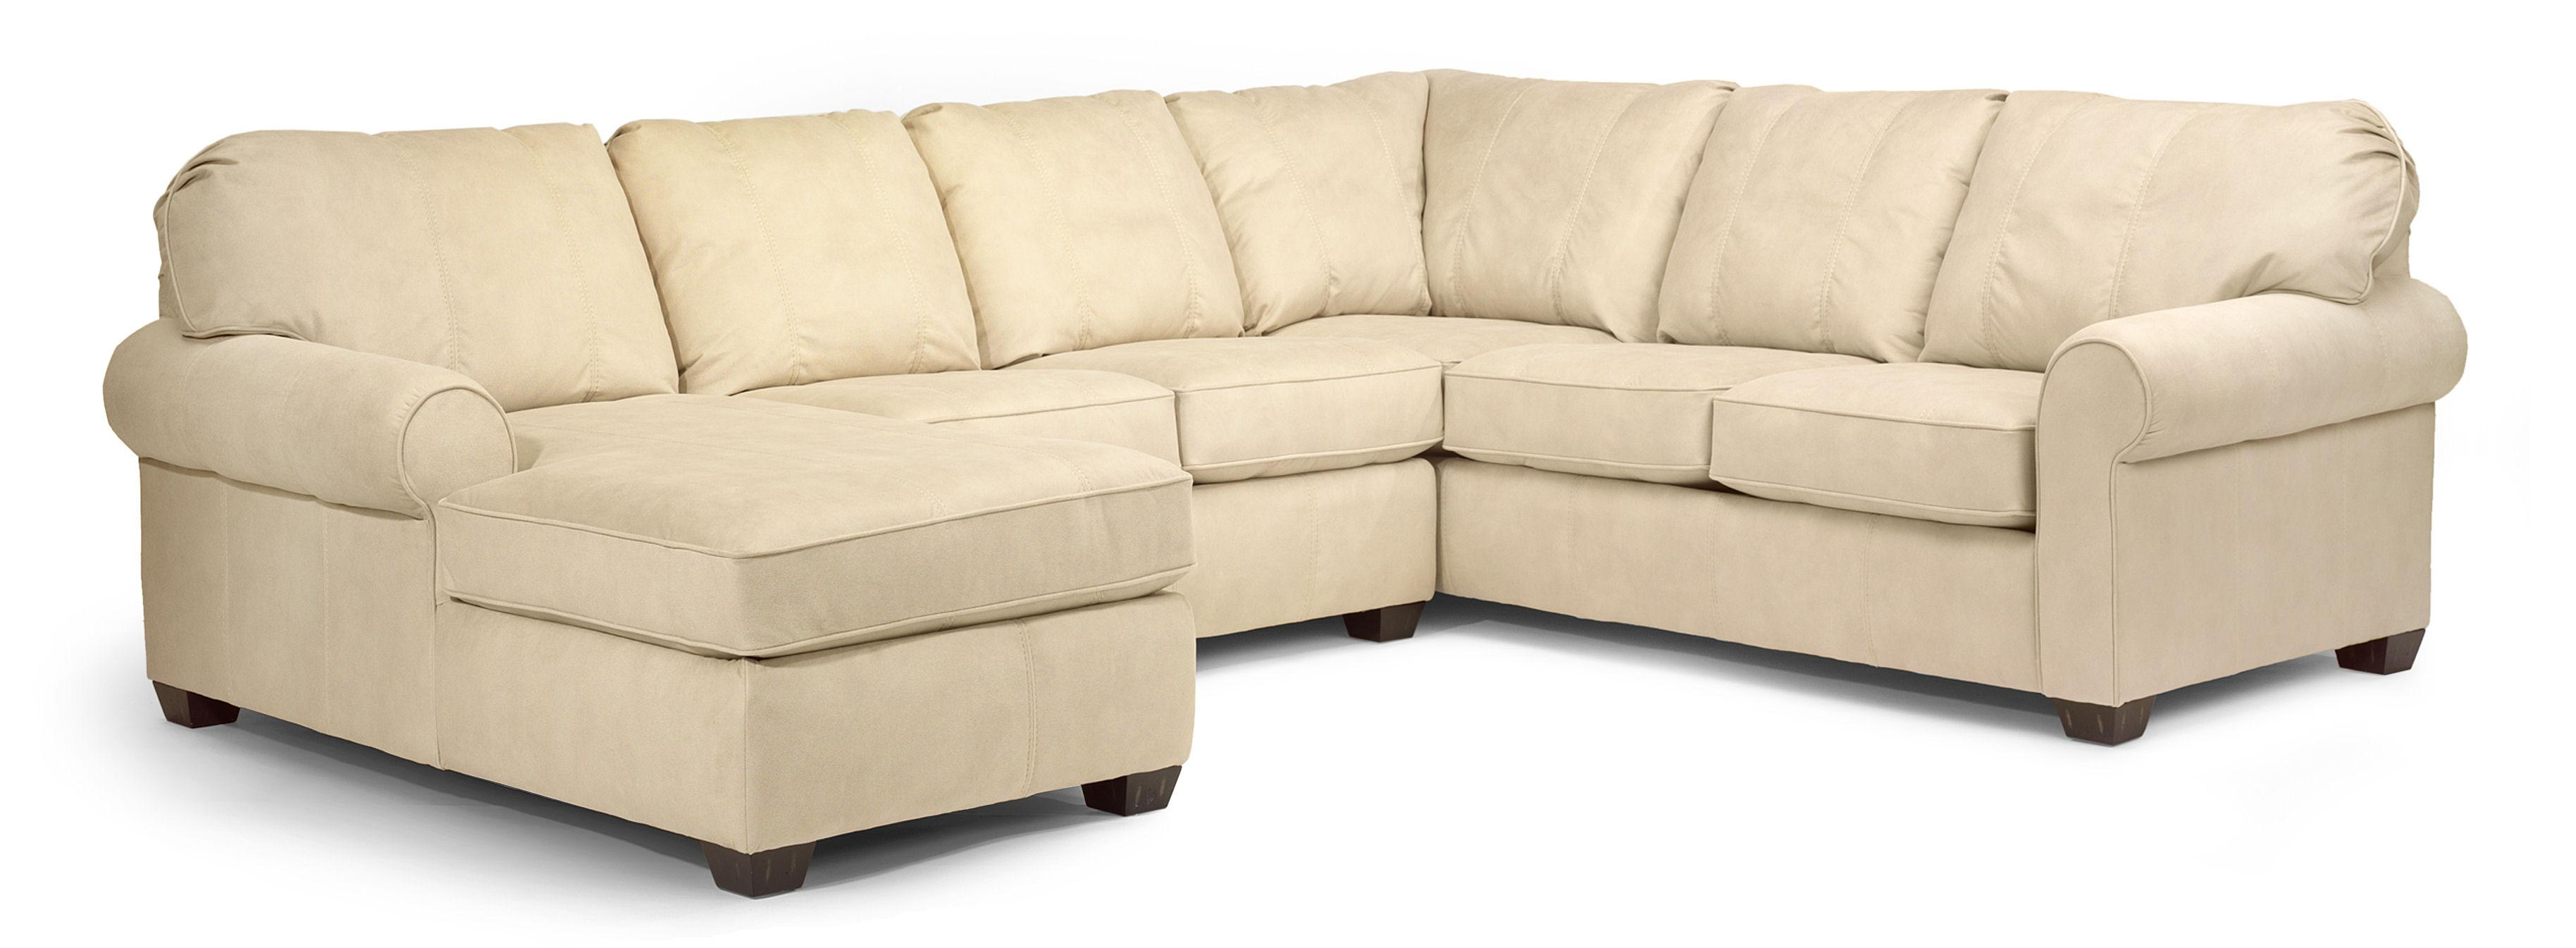 Flexsteel Thornton 3 Piece Sectional with Chaise Dunk & Bright